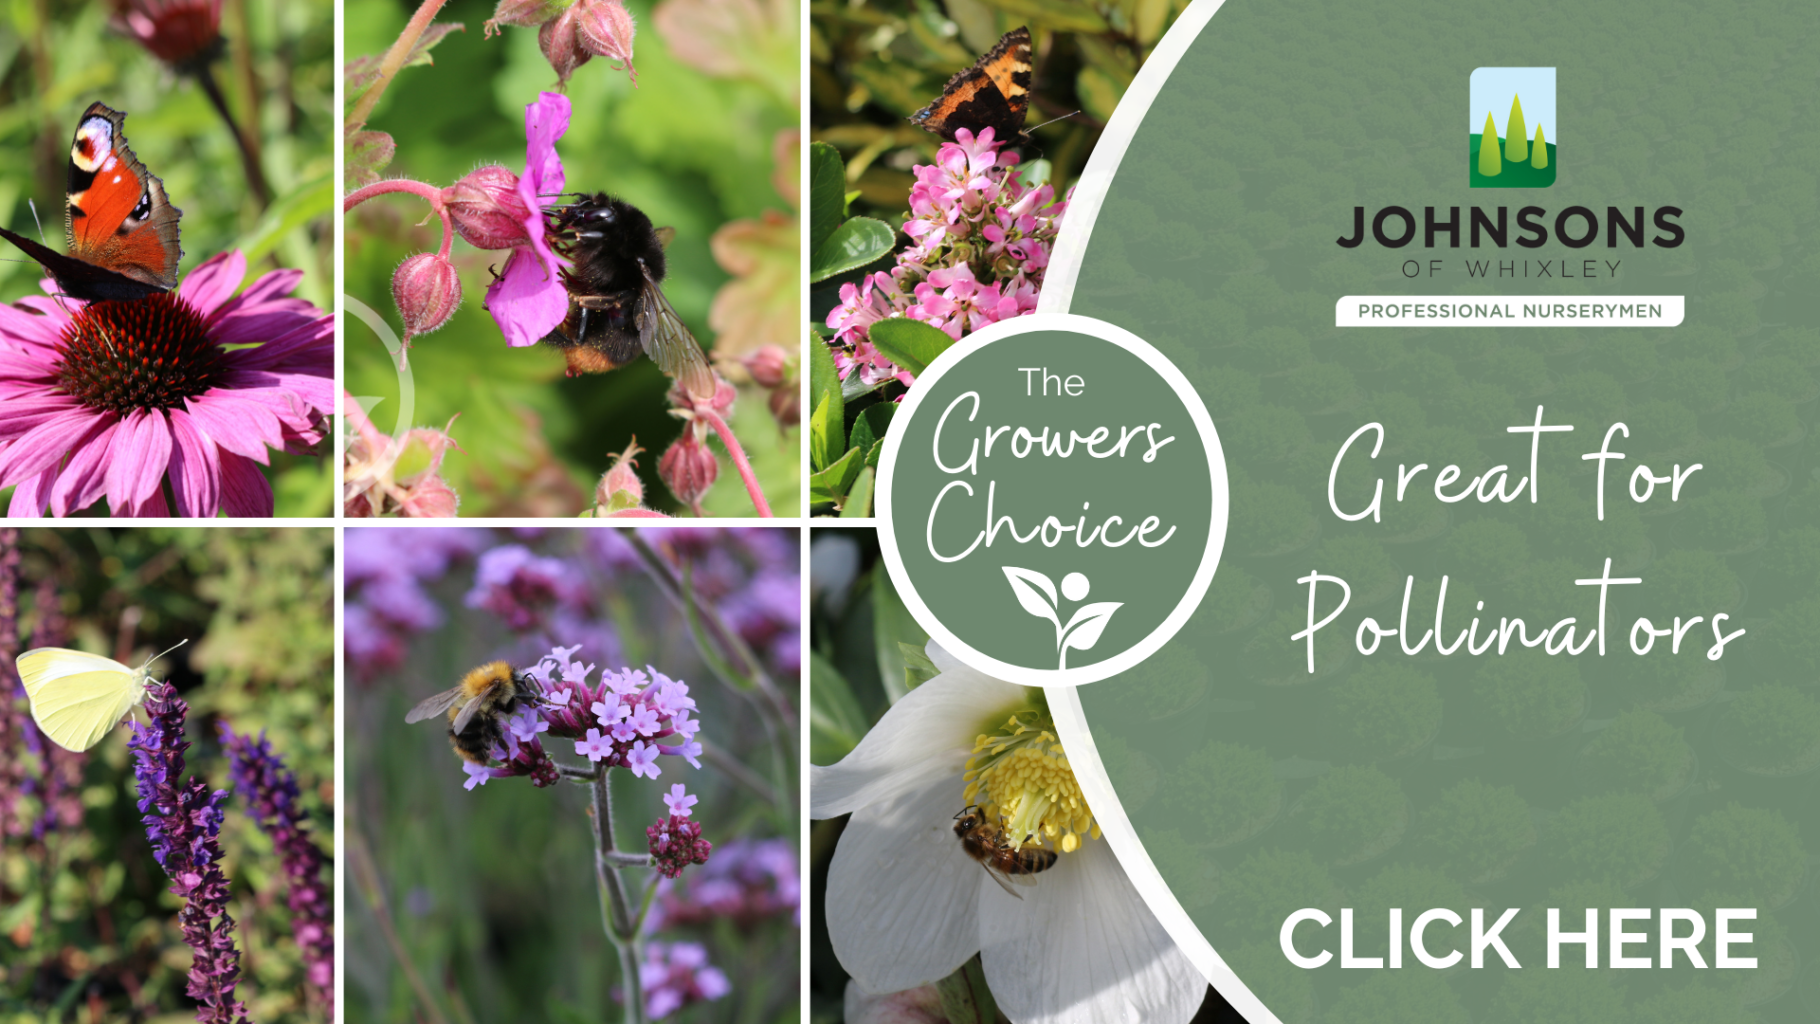 The Growers Choice: Plants and Trees for pollinators